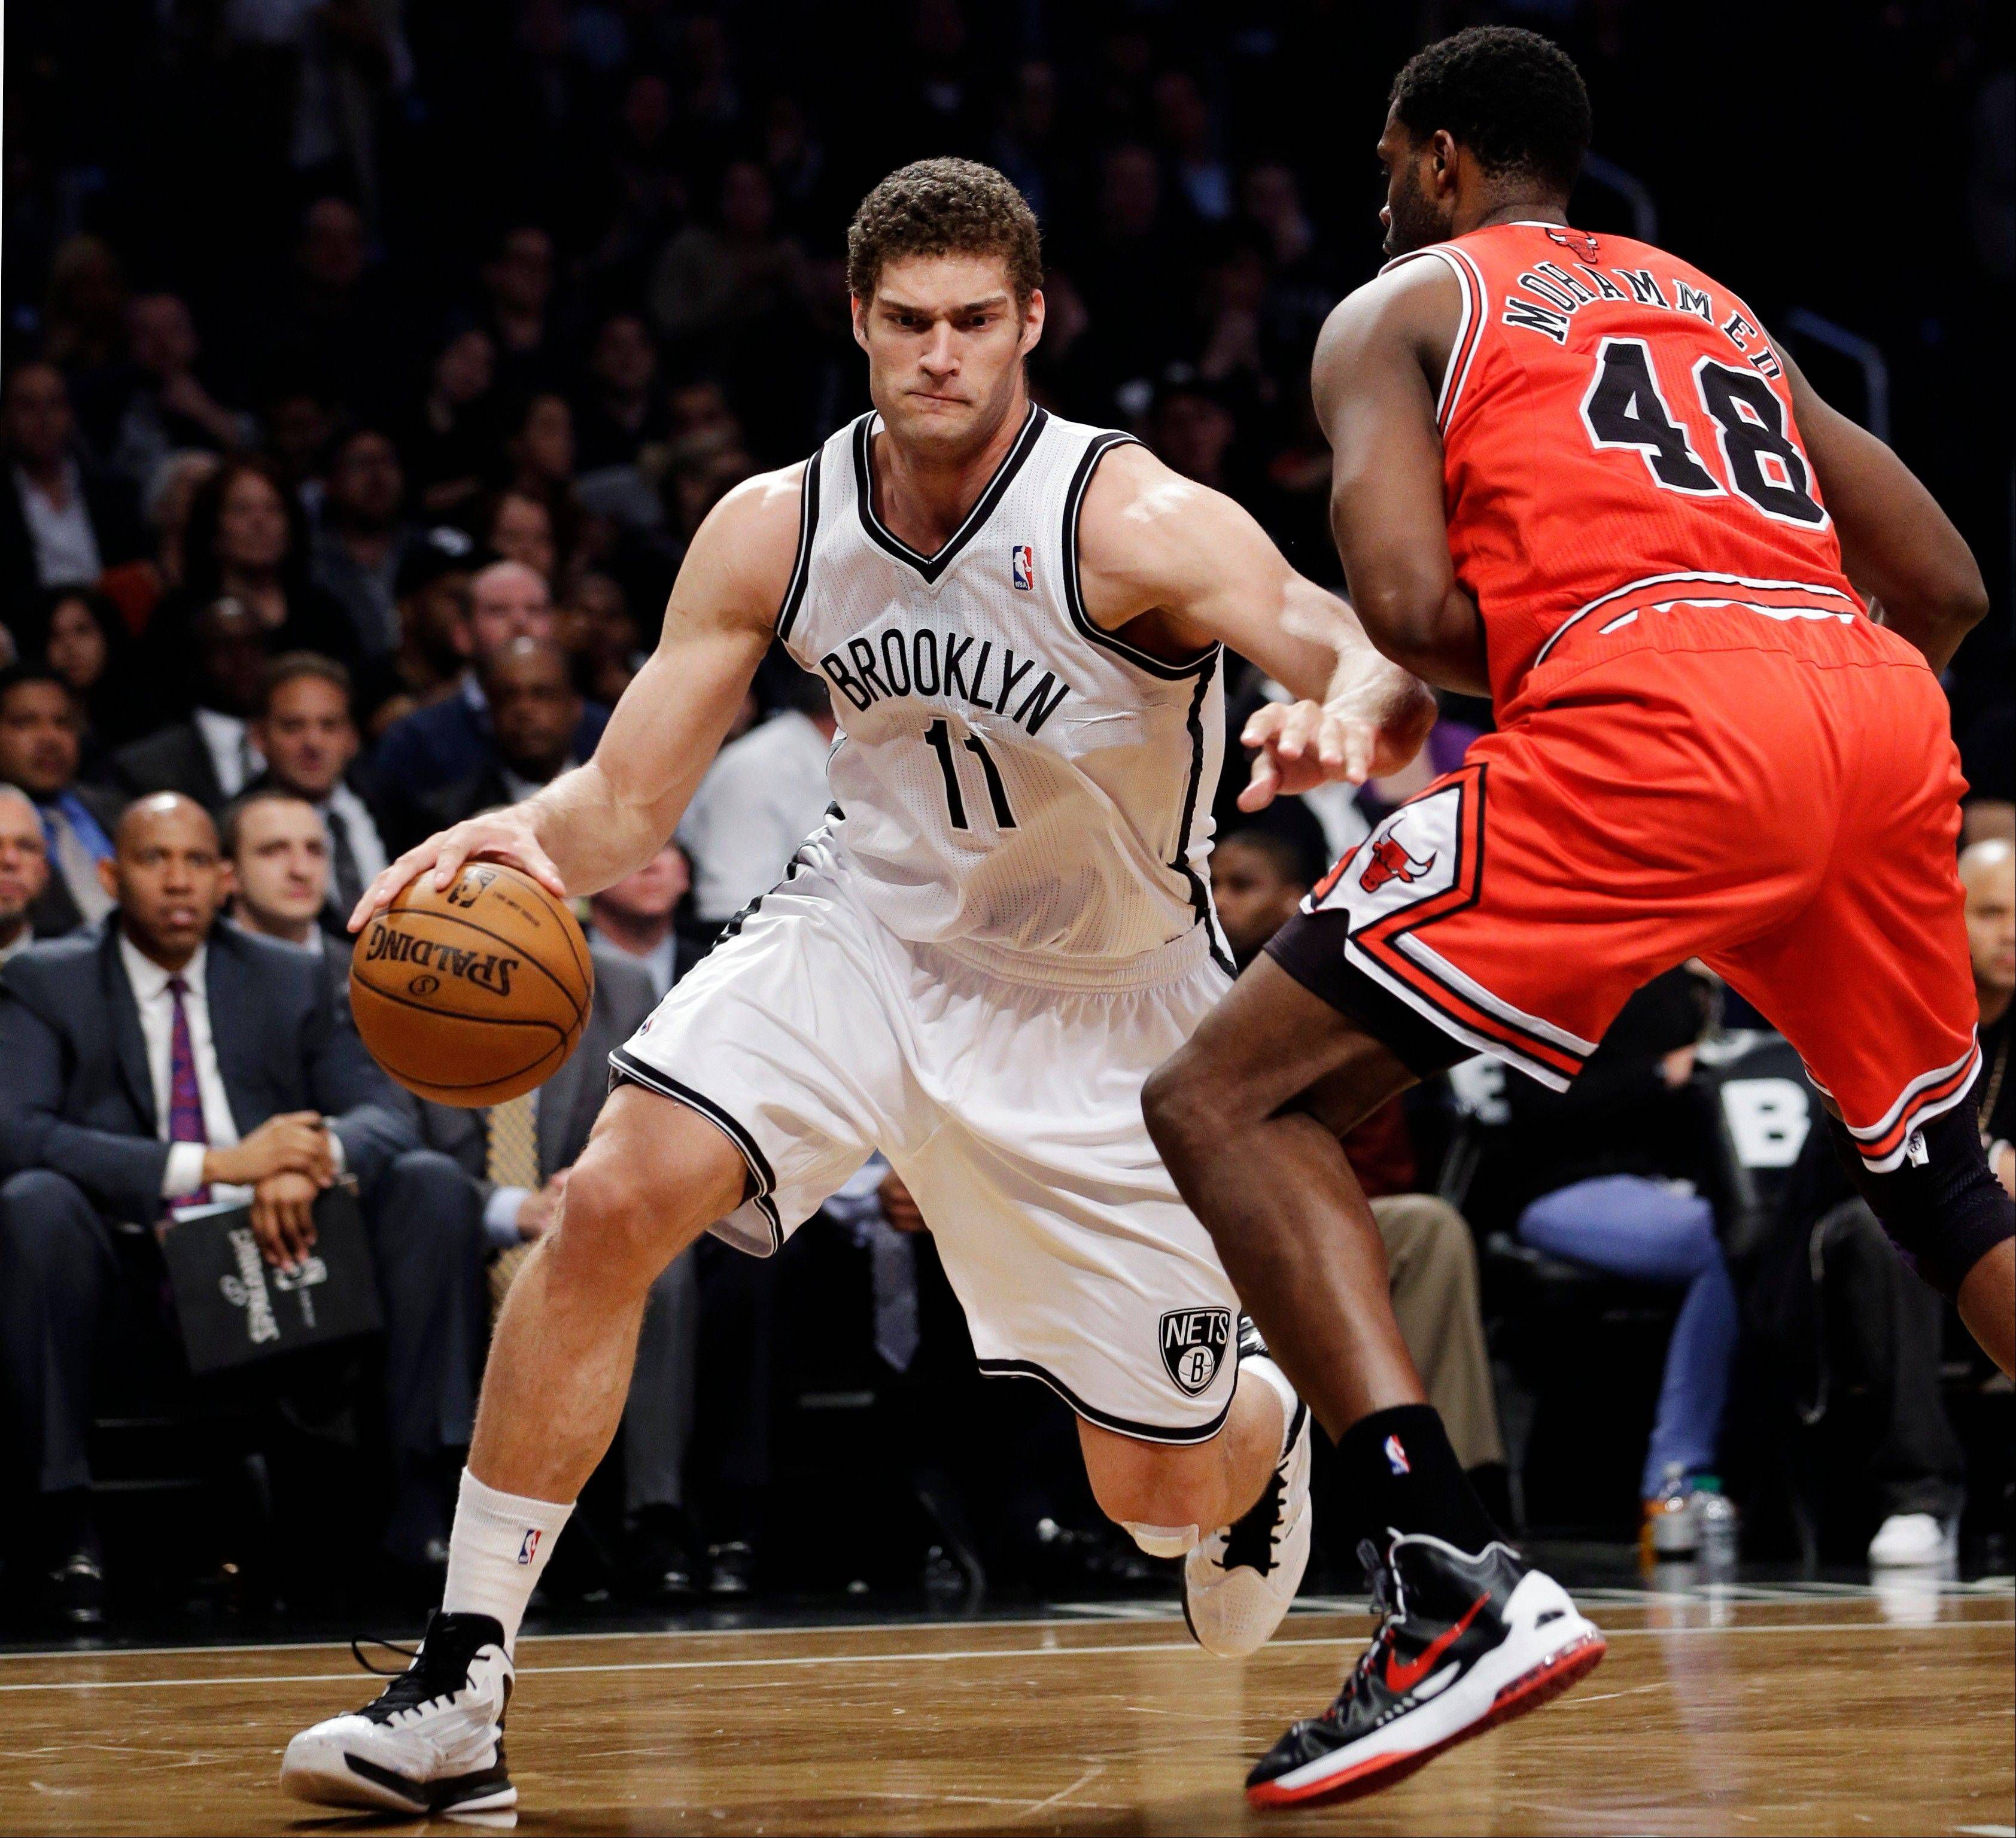 Brooklyn Nets center Brook Lopez (11) drives past Chicago Bulls center Nazr Mohammed (48) in the first half of Game 5 of their first-round NBA basketball playoff series, Monday, April 29, 2013, in New York.